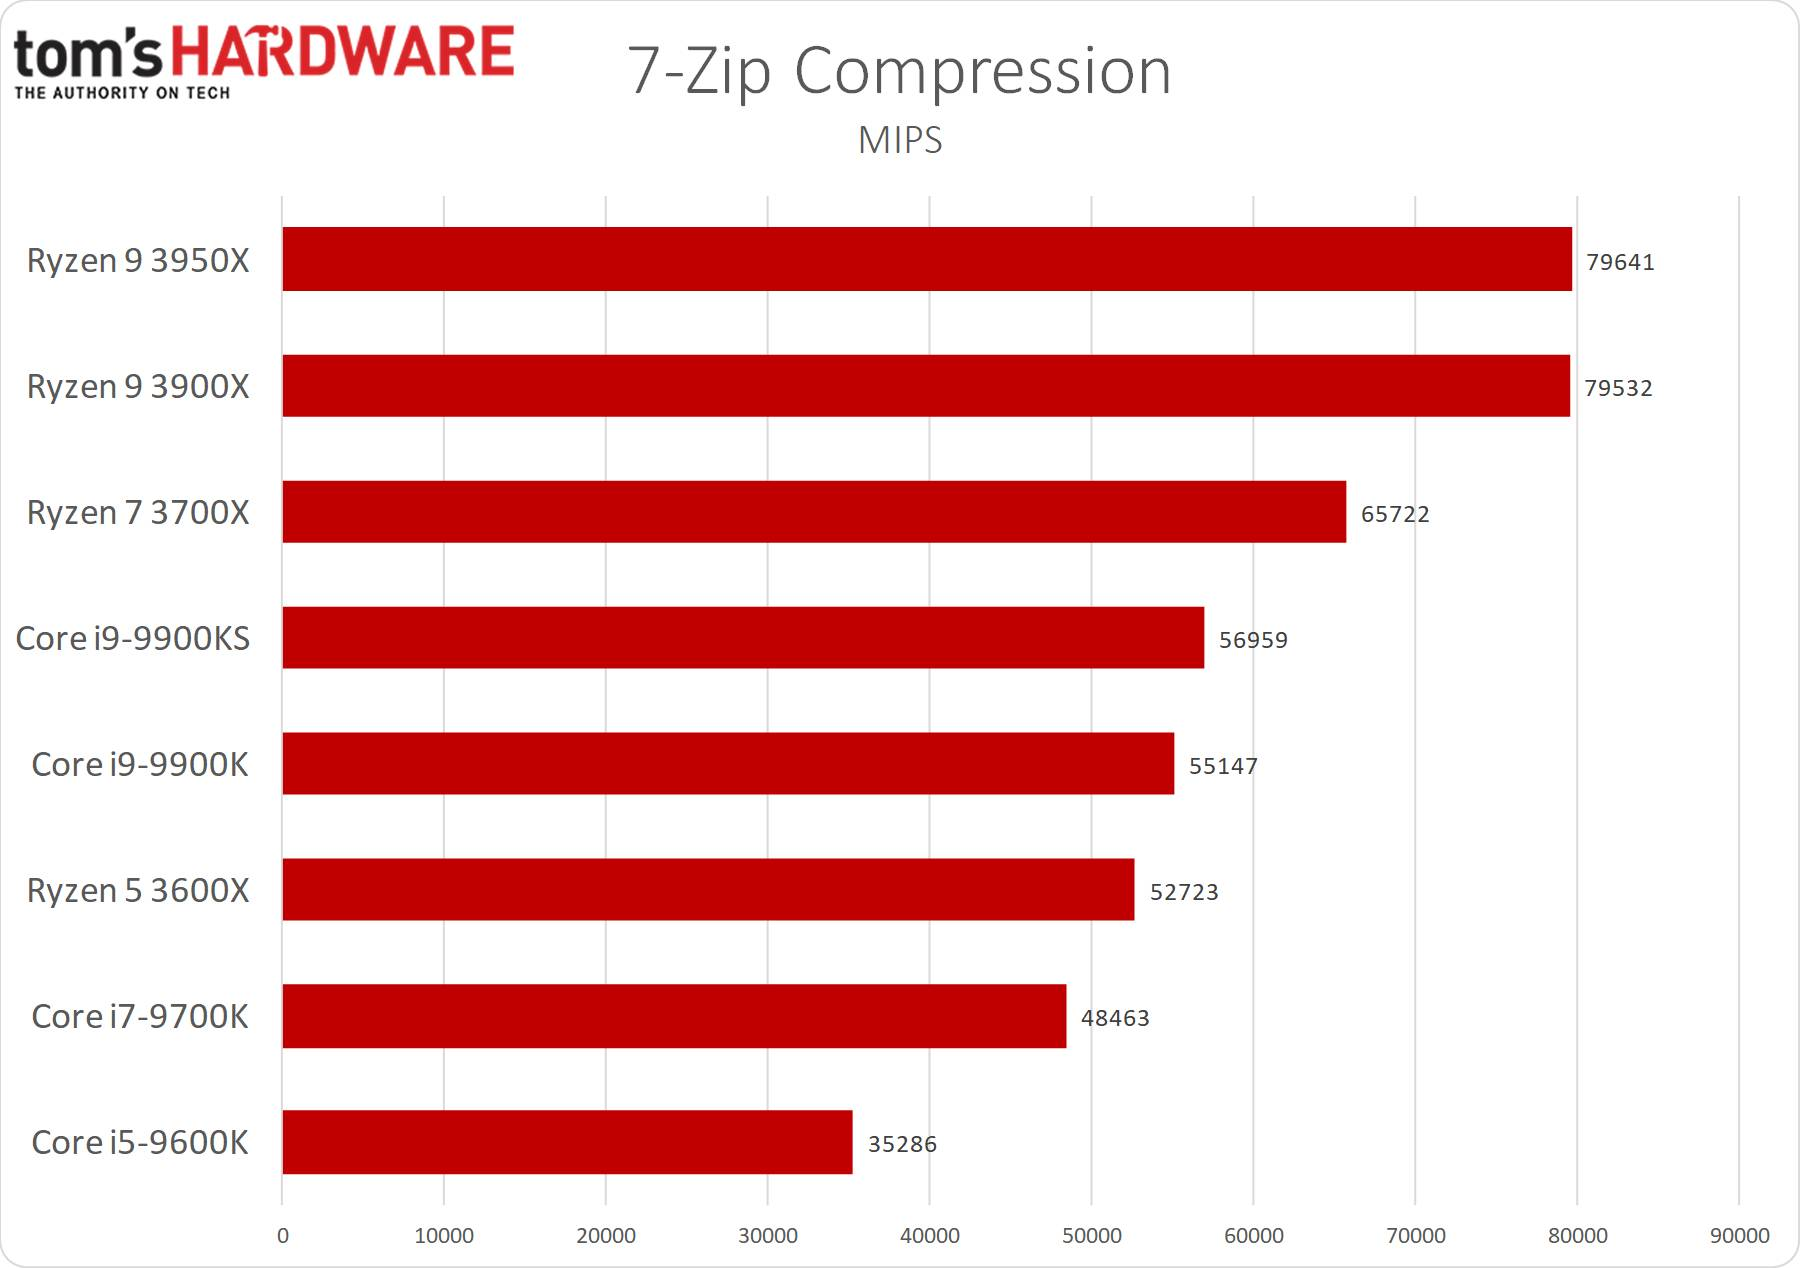 7-zip - compressione